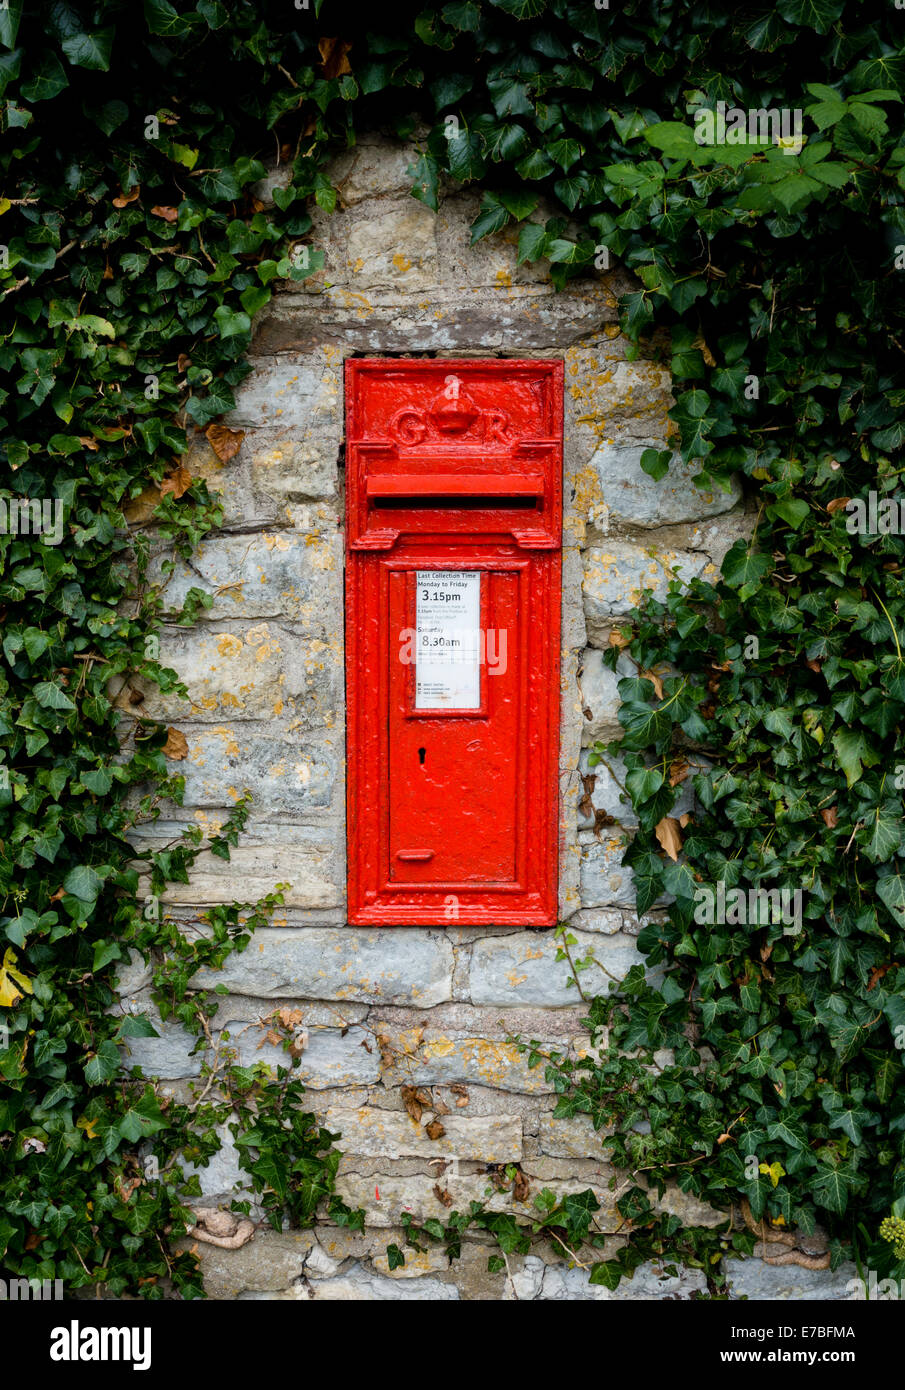 Georgian ( Vth ) post box in the ivy clad stone wall of a Somerset village UK - Stock Image